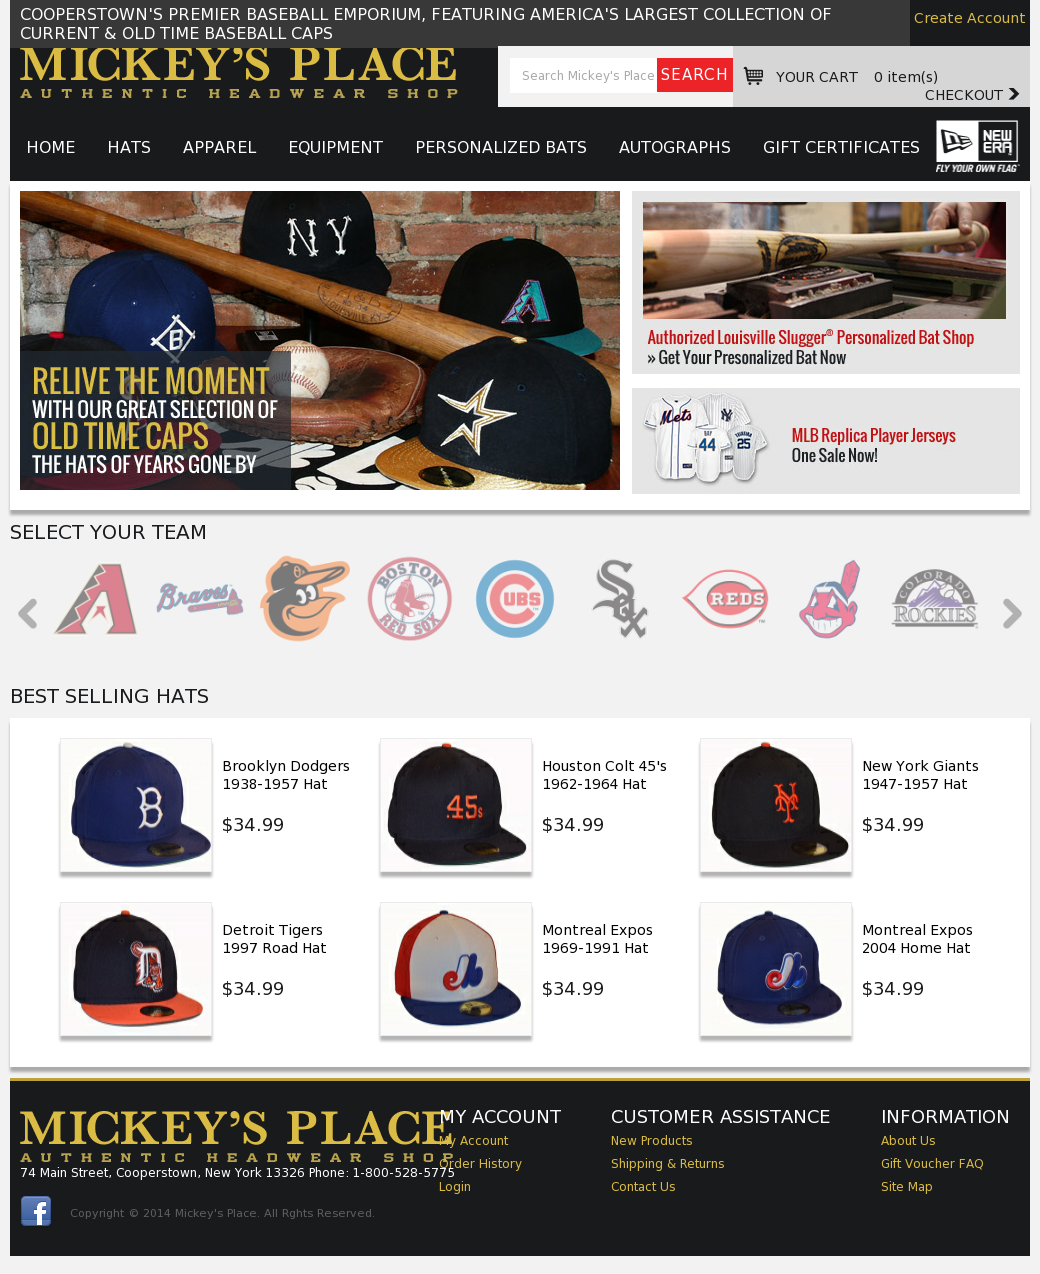 c3eb7650 Mickey's Place Competitors, Revenue and Employees - Owler Company Profile